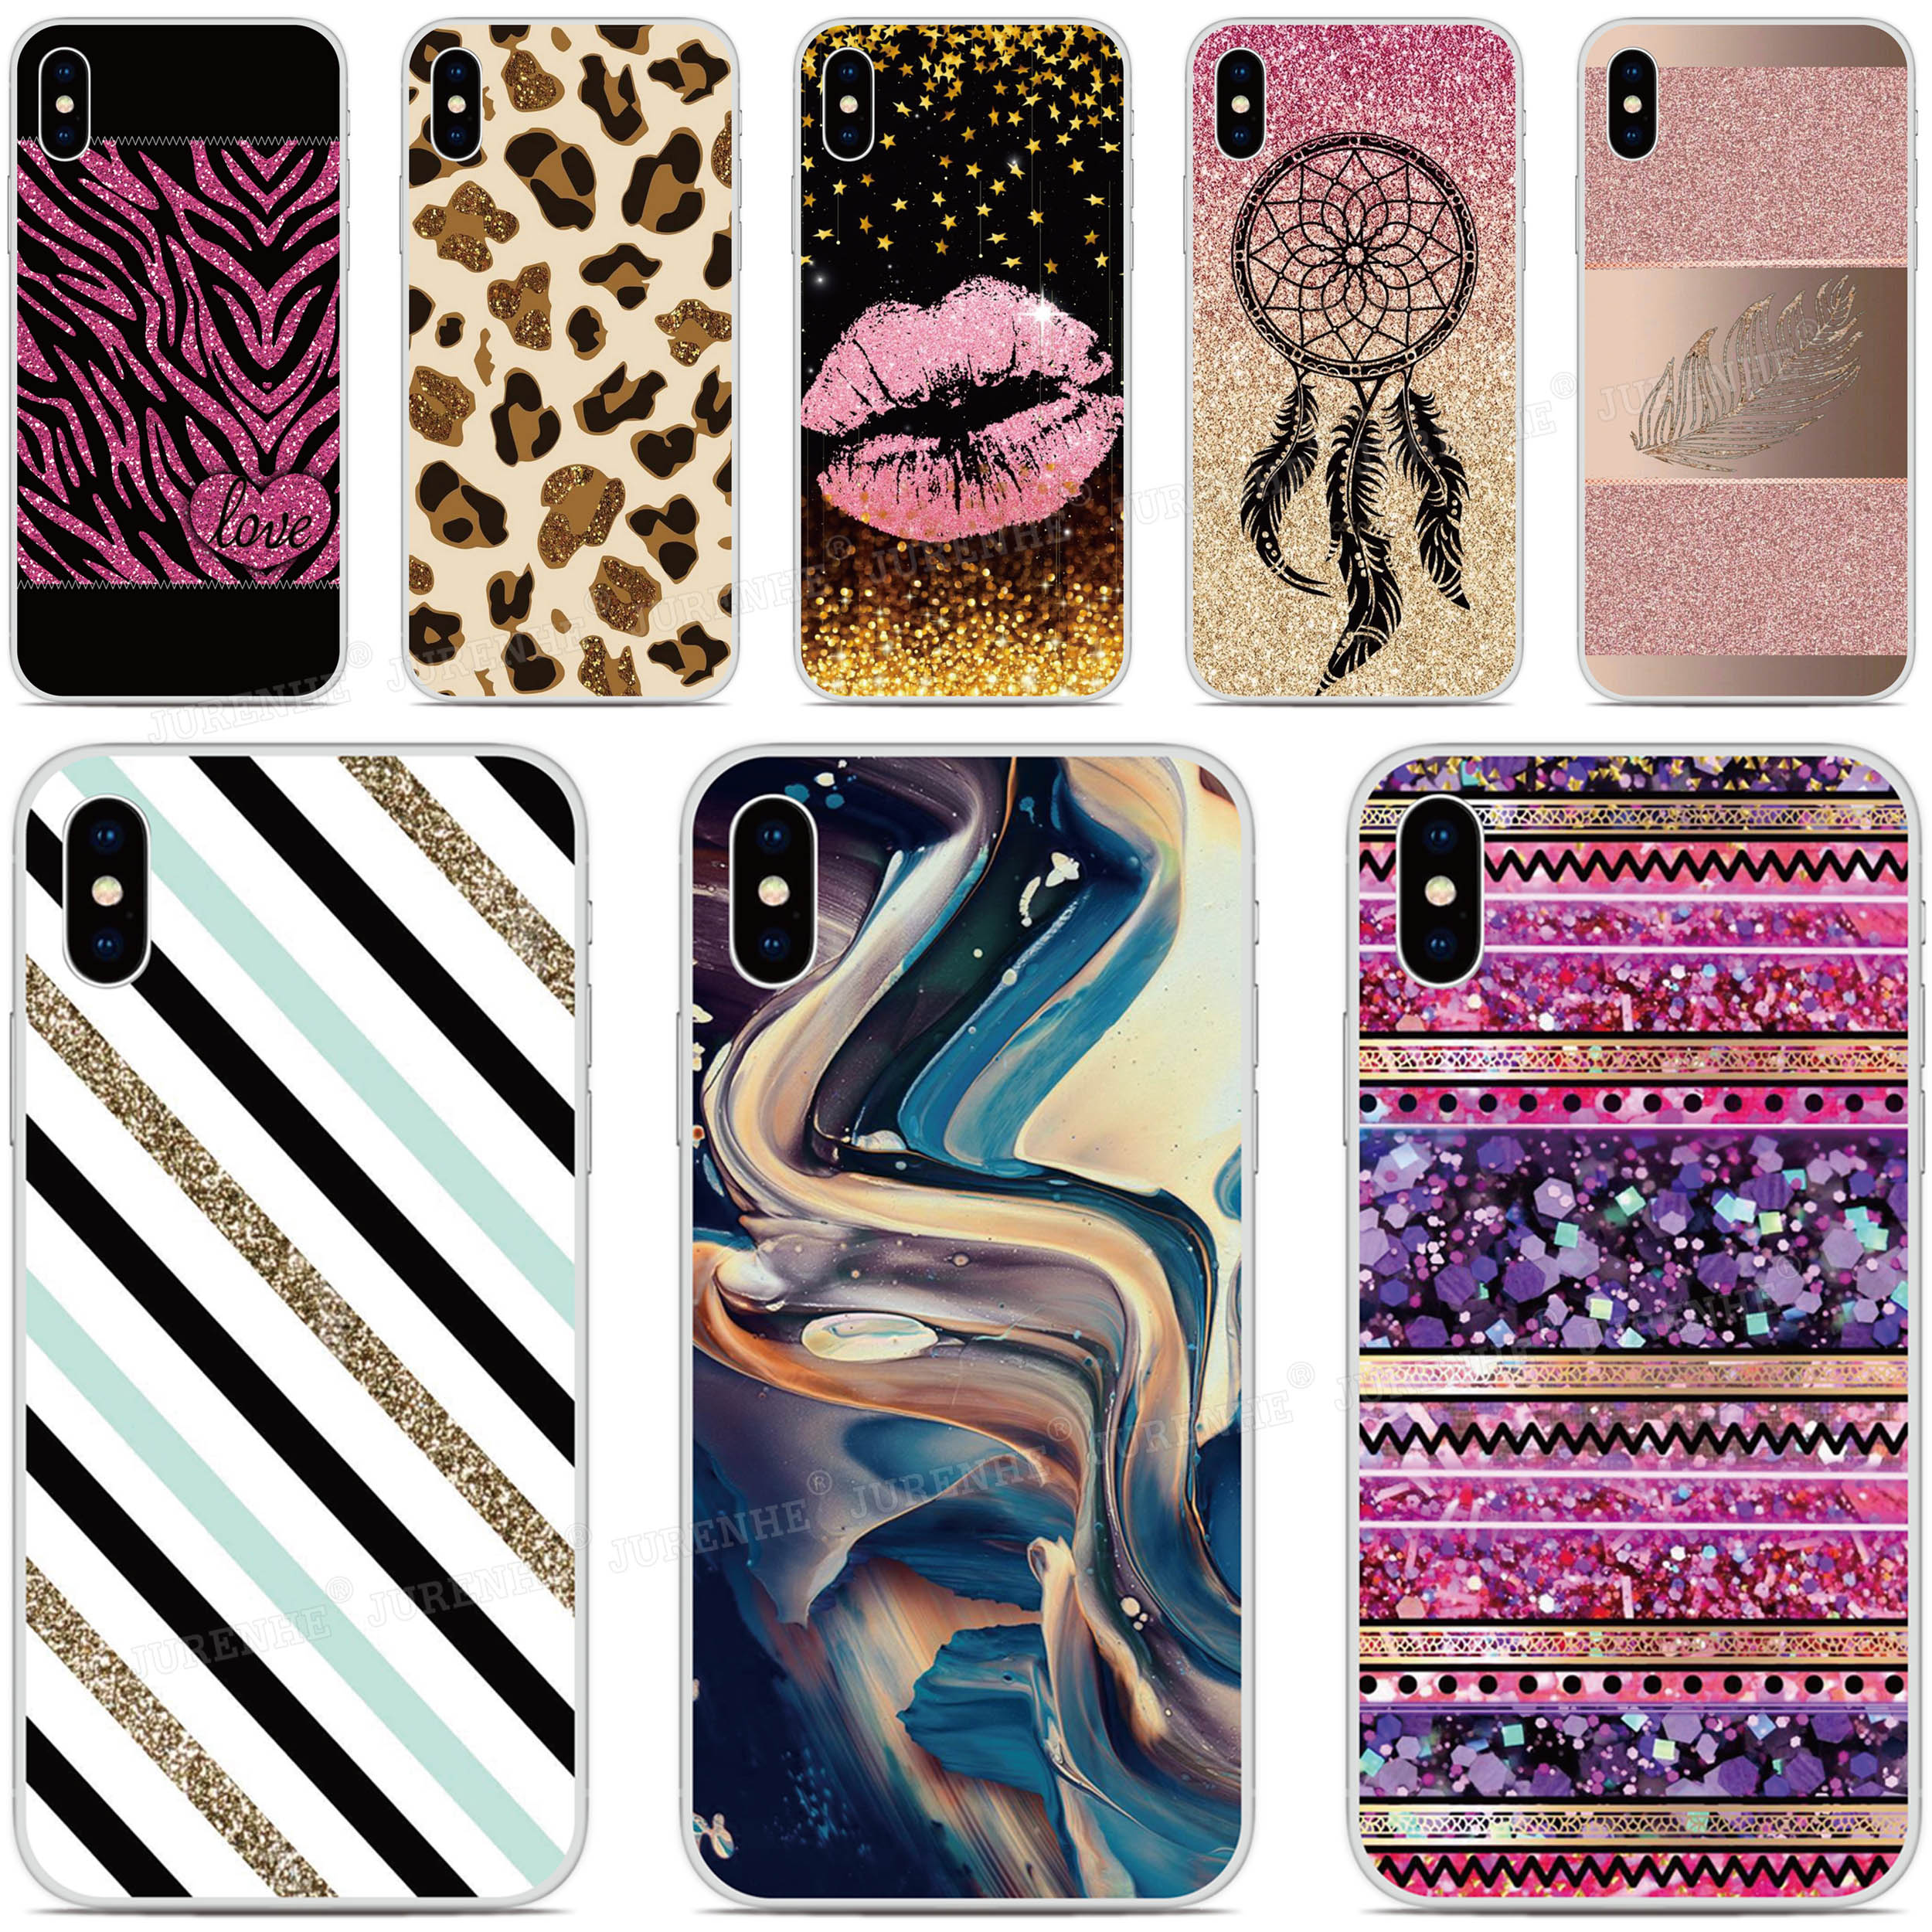 Soft Silicone Glitter Designs Cover <font><b>Cases</b></font> For <font><b>Oukitel</b></font> C18 <font><b>K6000</b></font> C17 C16 C15 C13 C12 U25 <font><b>Pro</b></font> K9 K3 U22 U20 Plus Y4800 Phone <font><b>Case</b></font> image